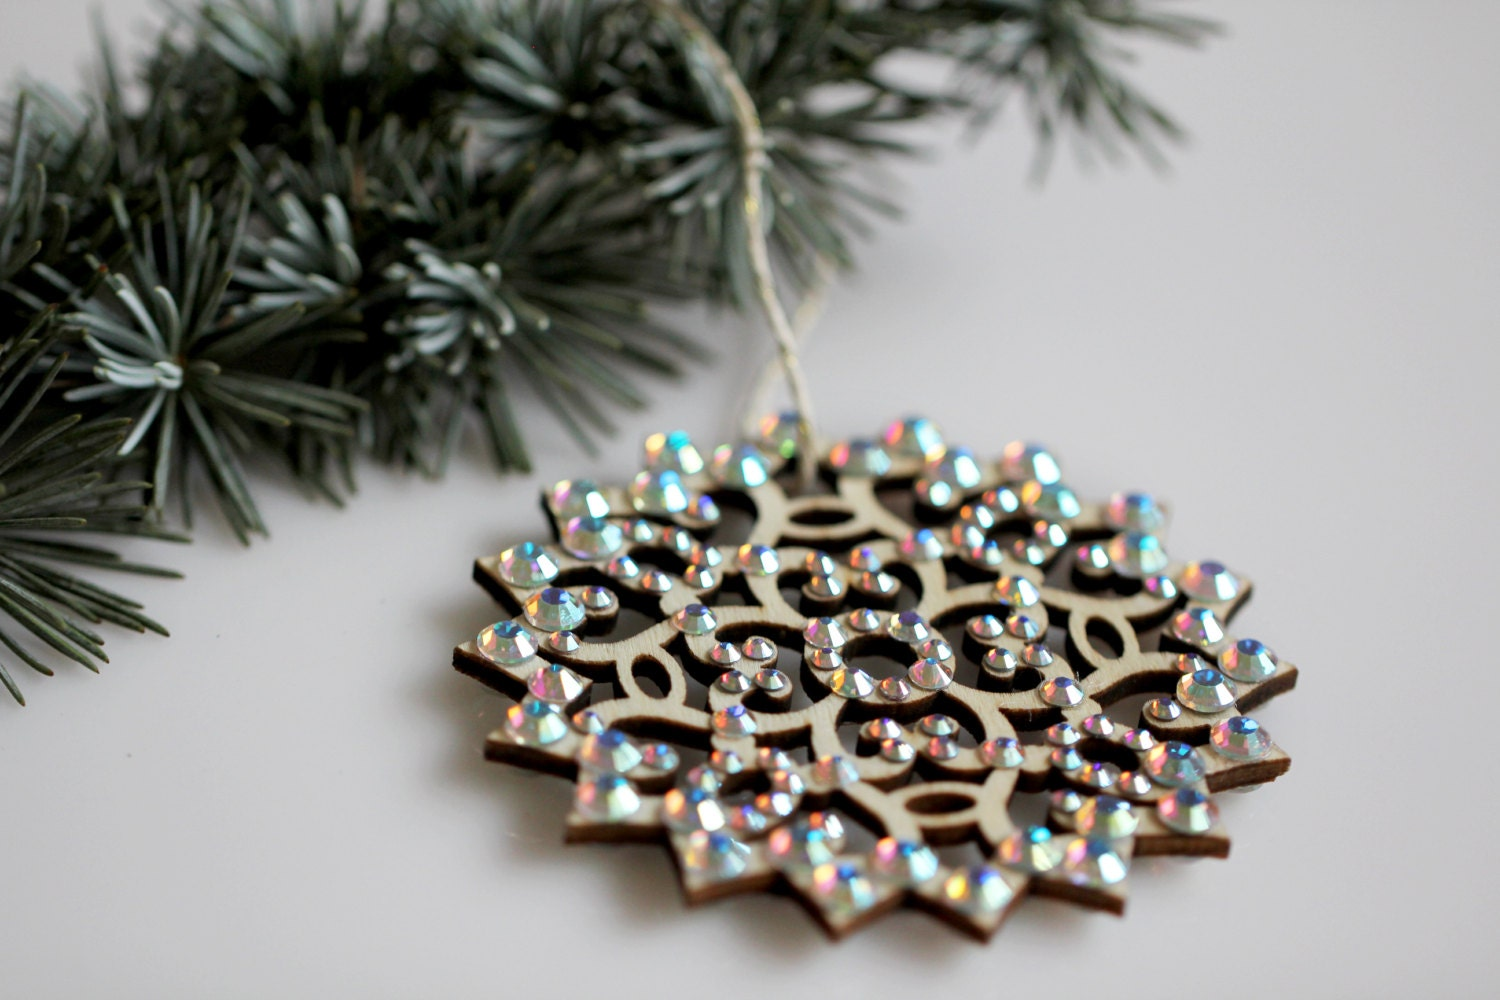 Swarovski Christmas Ornament Crystal AB Christmas Decoration Sparkly Snowflake Luxury holiday housewarming gift aurora borealis